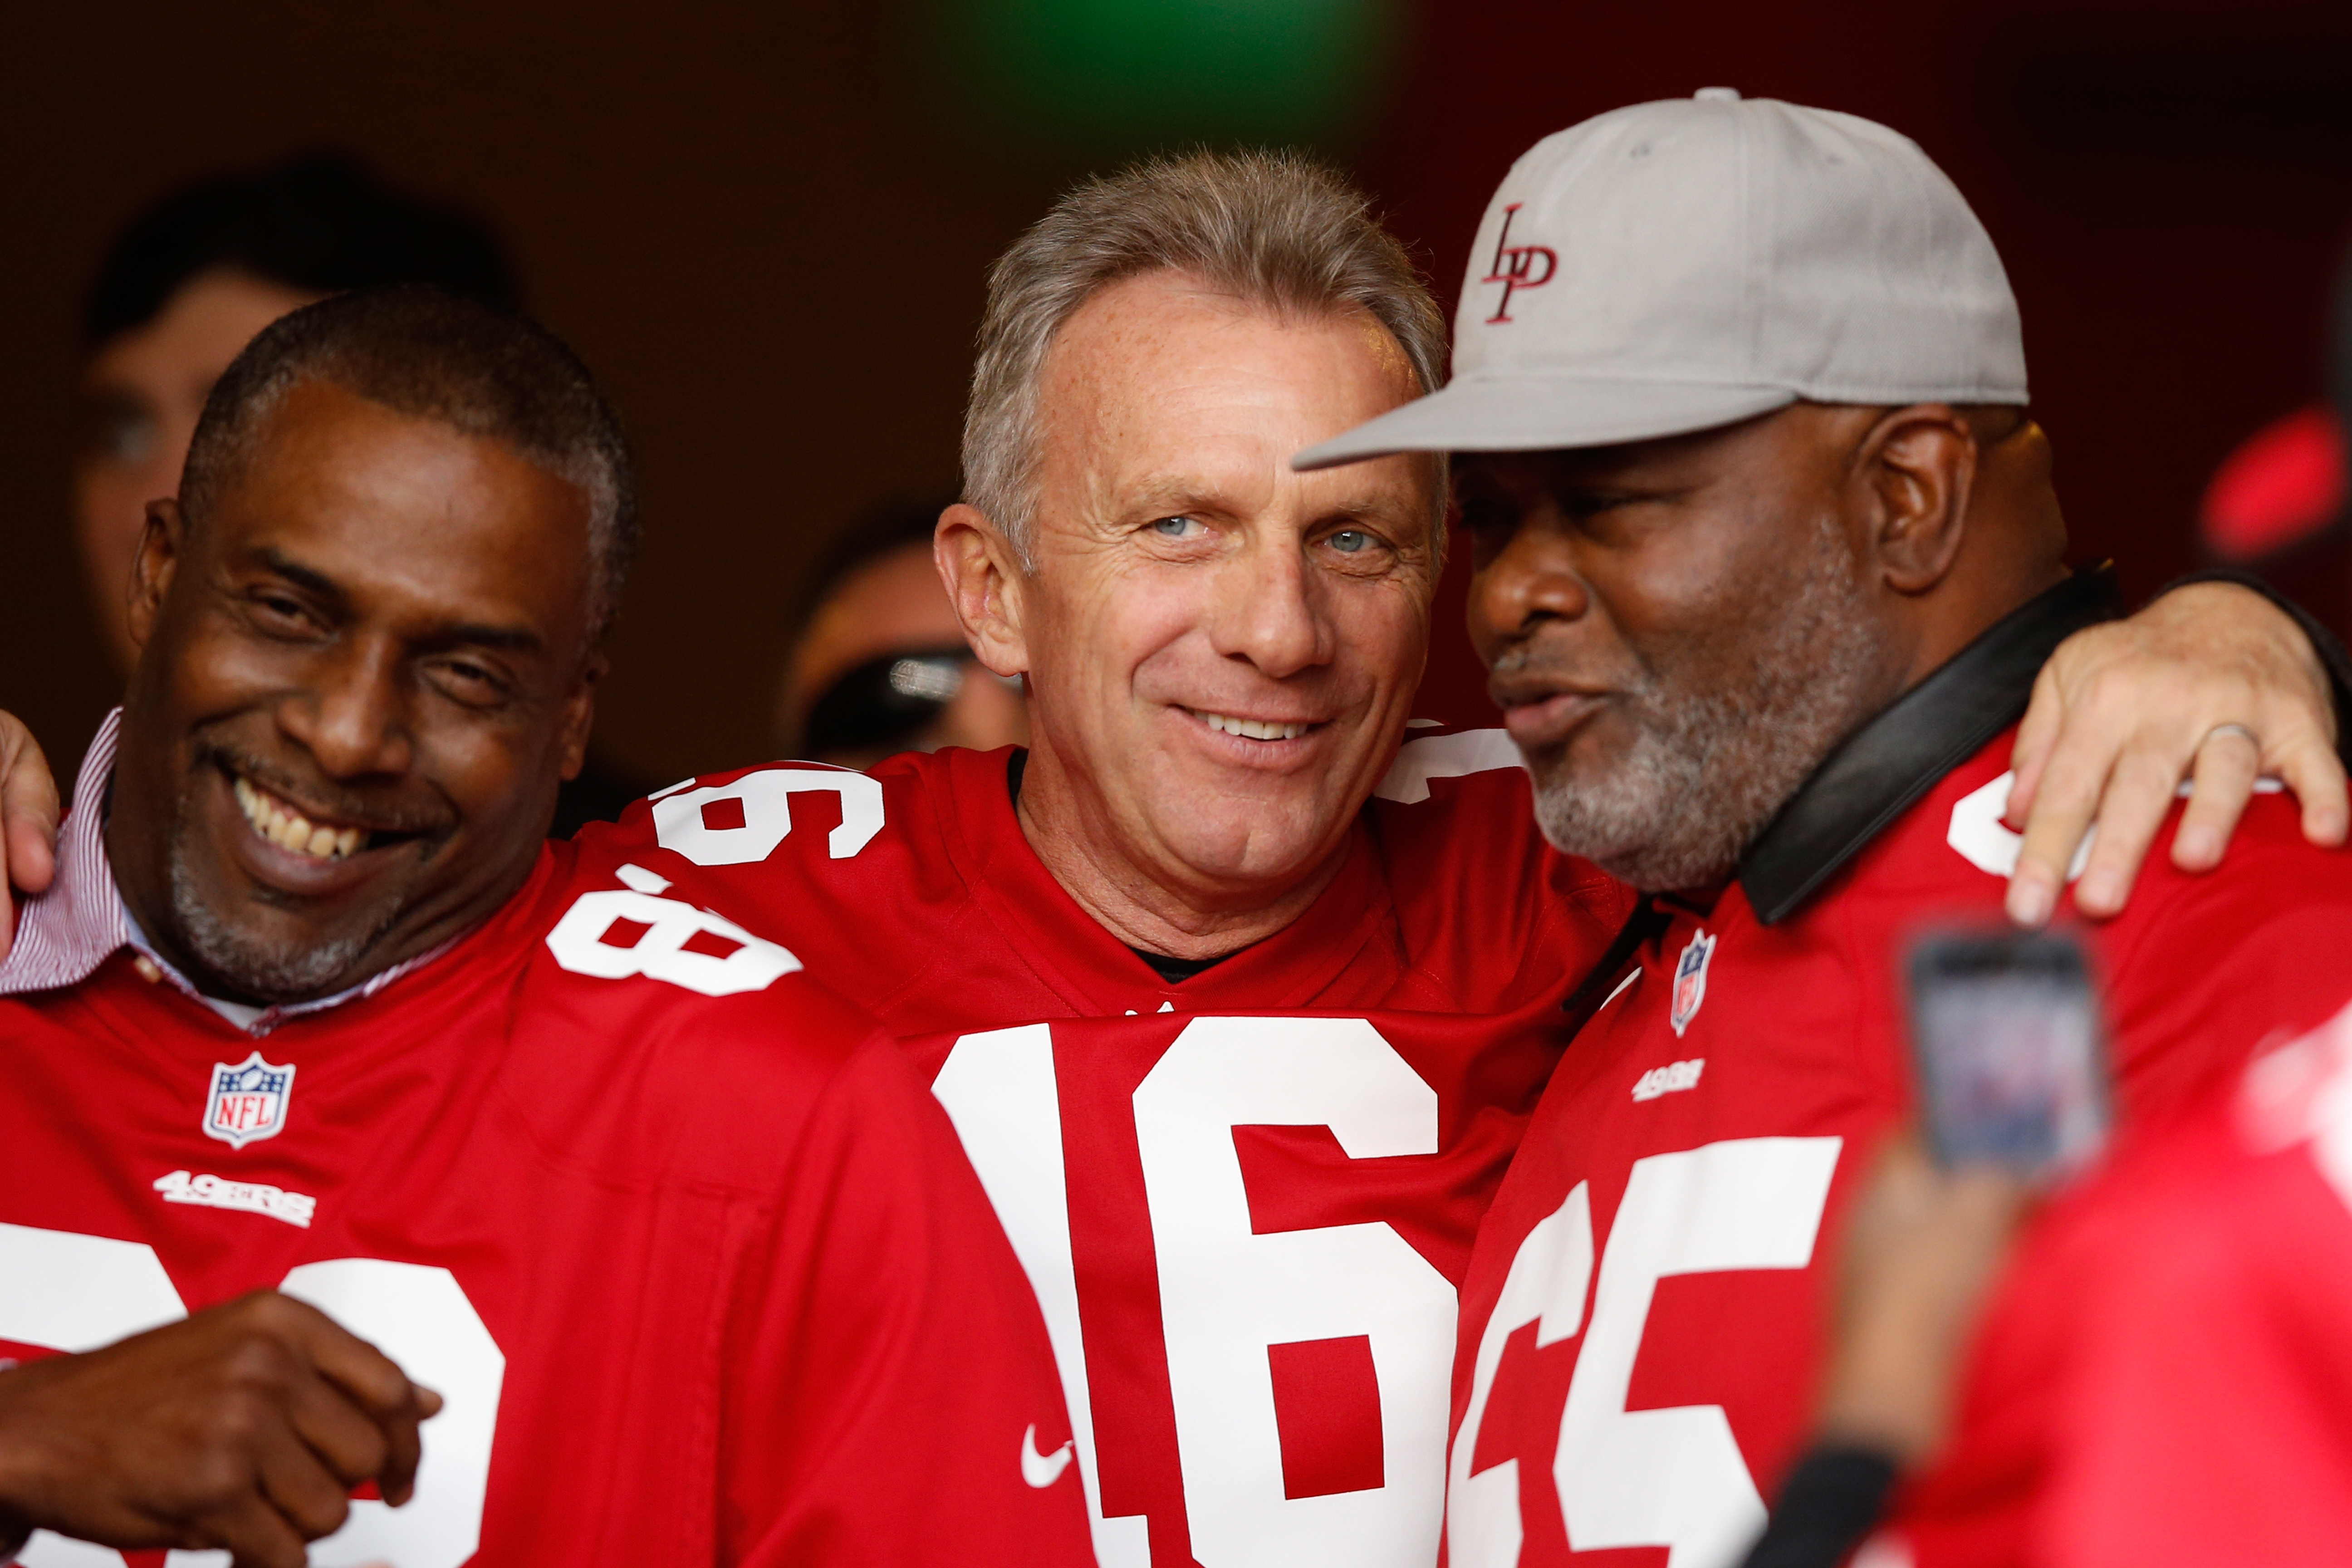 Former San Francisco 49ers players John Taylor, Joe Montana and Lawrence Pillers are seen during a ceremony honoring the 1981-82 team at halftime of the NFL game between the San Francisco 49ers and the Cincinnati Bengals at Levi's Stadium on December 20, 2015 in Santa Clara, California.